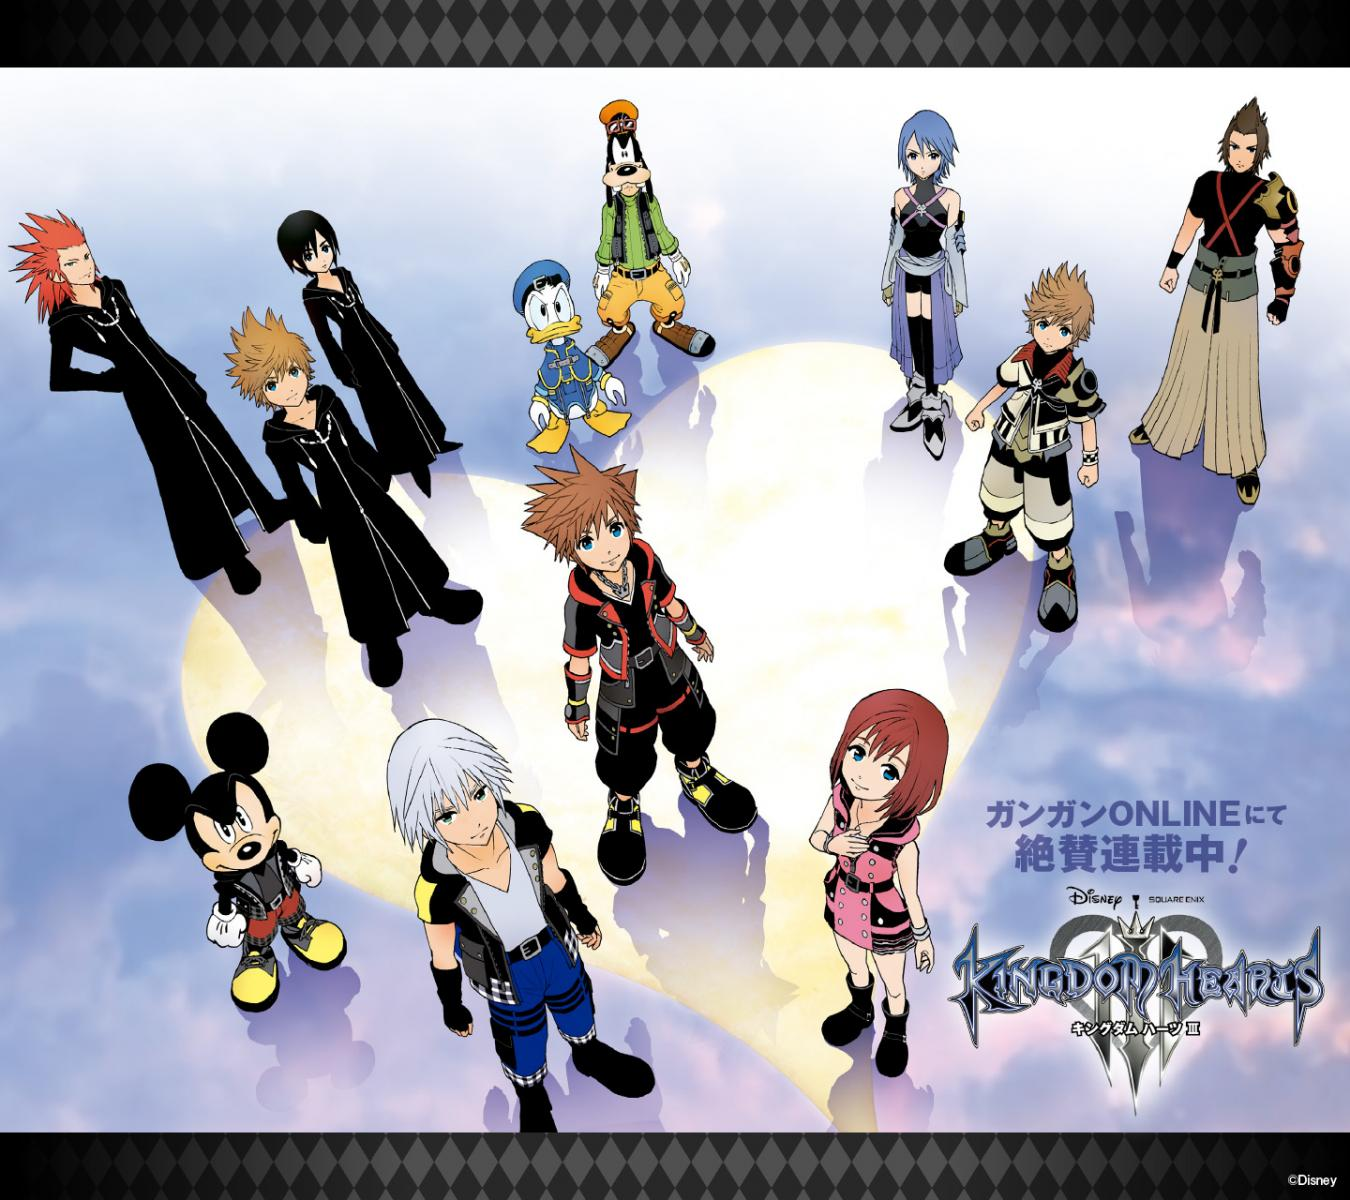 Kingdom Manga Next Release: Kingdom Hearts III Manga Official Wallpapers Now Available